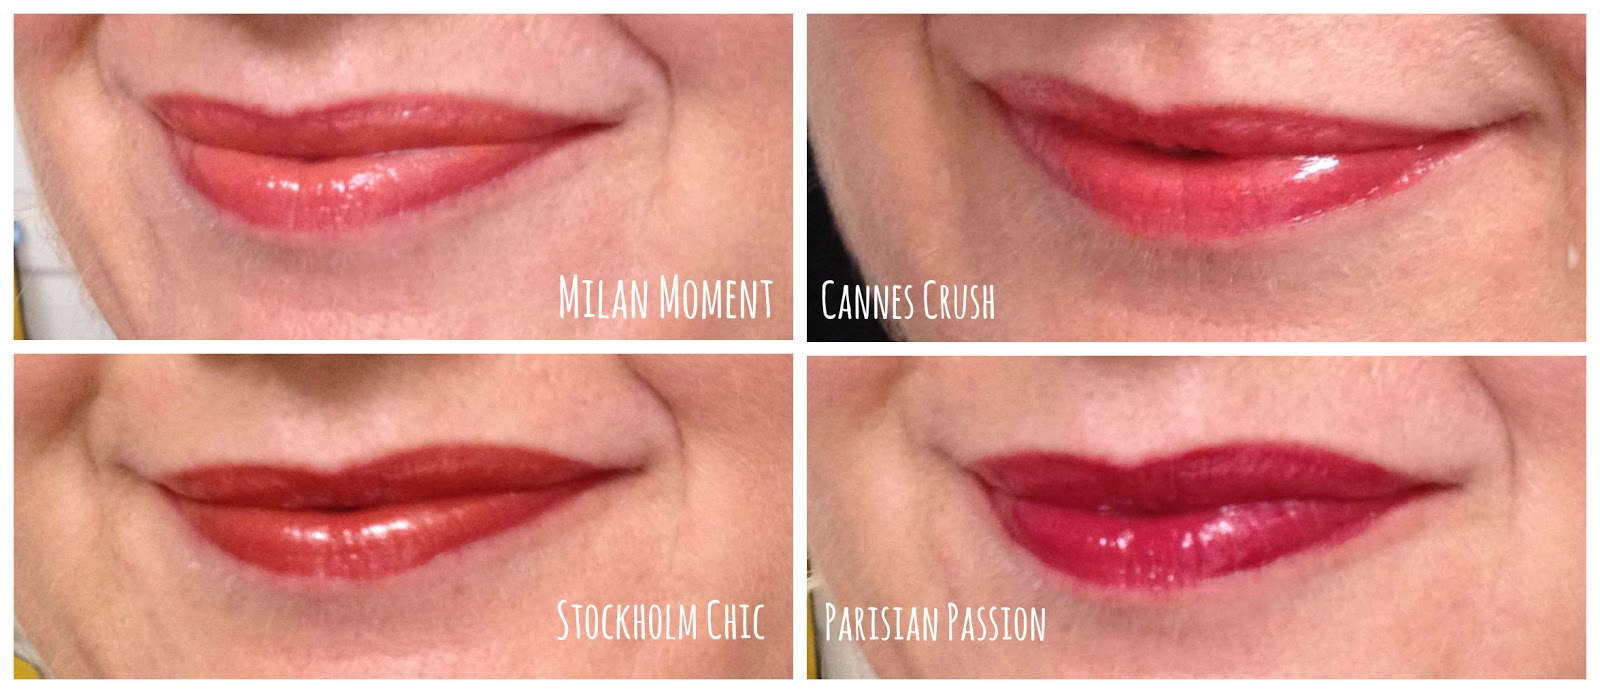 Revlon Colorstay Moisture Stains milan moment, cannes crush, stockholm chic and parisian passion